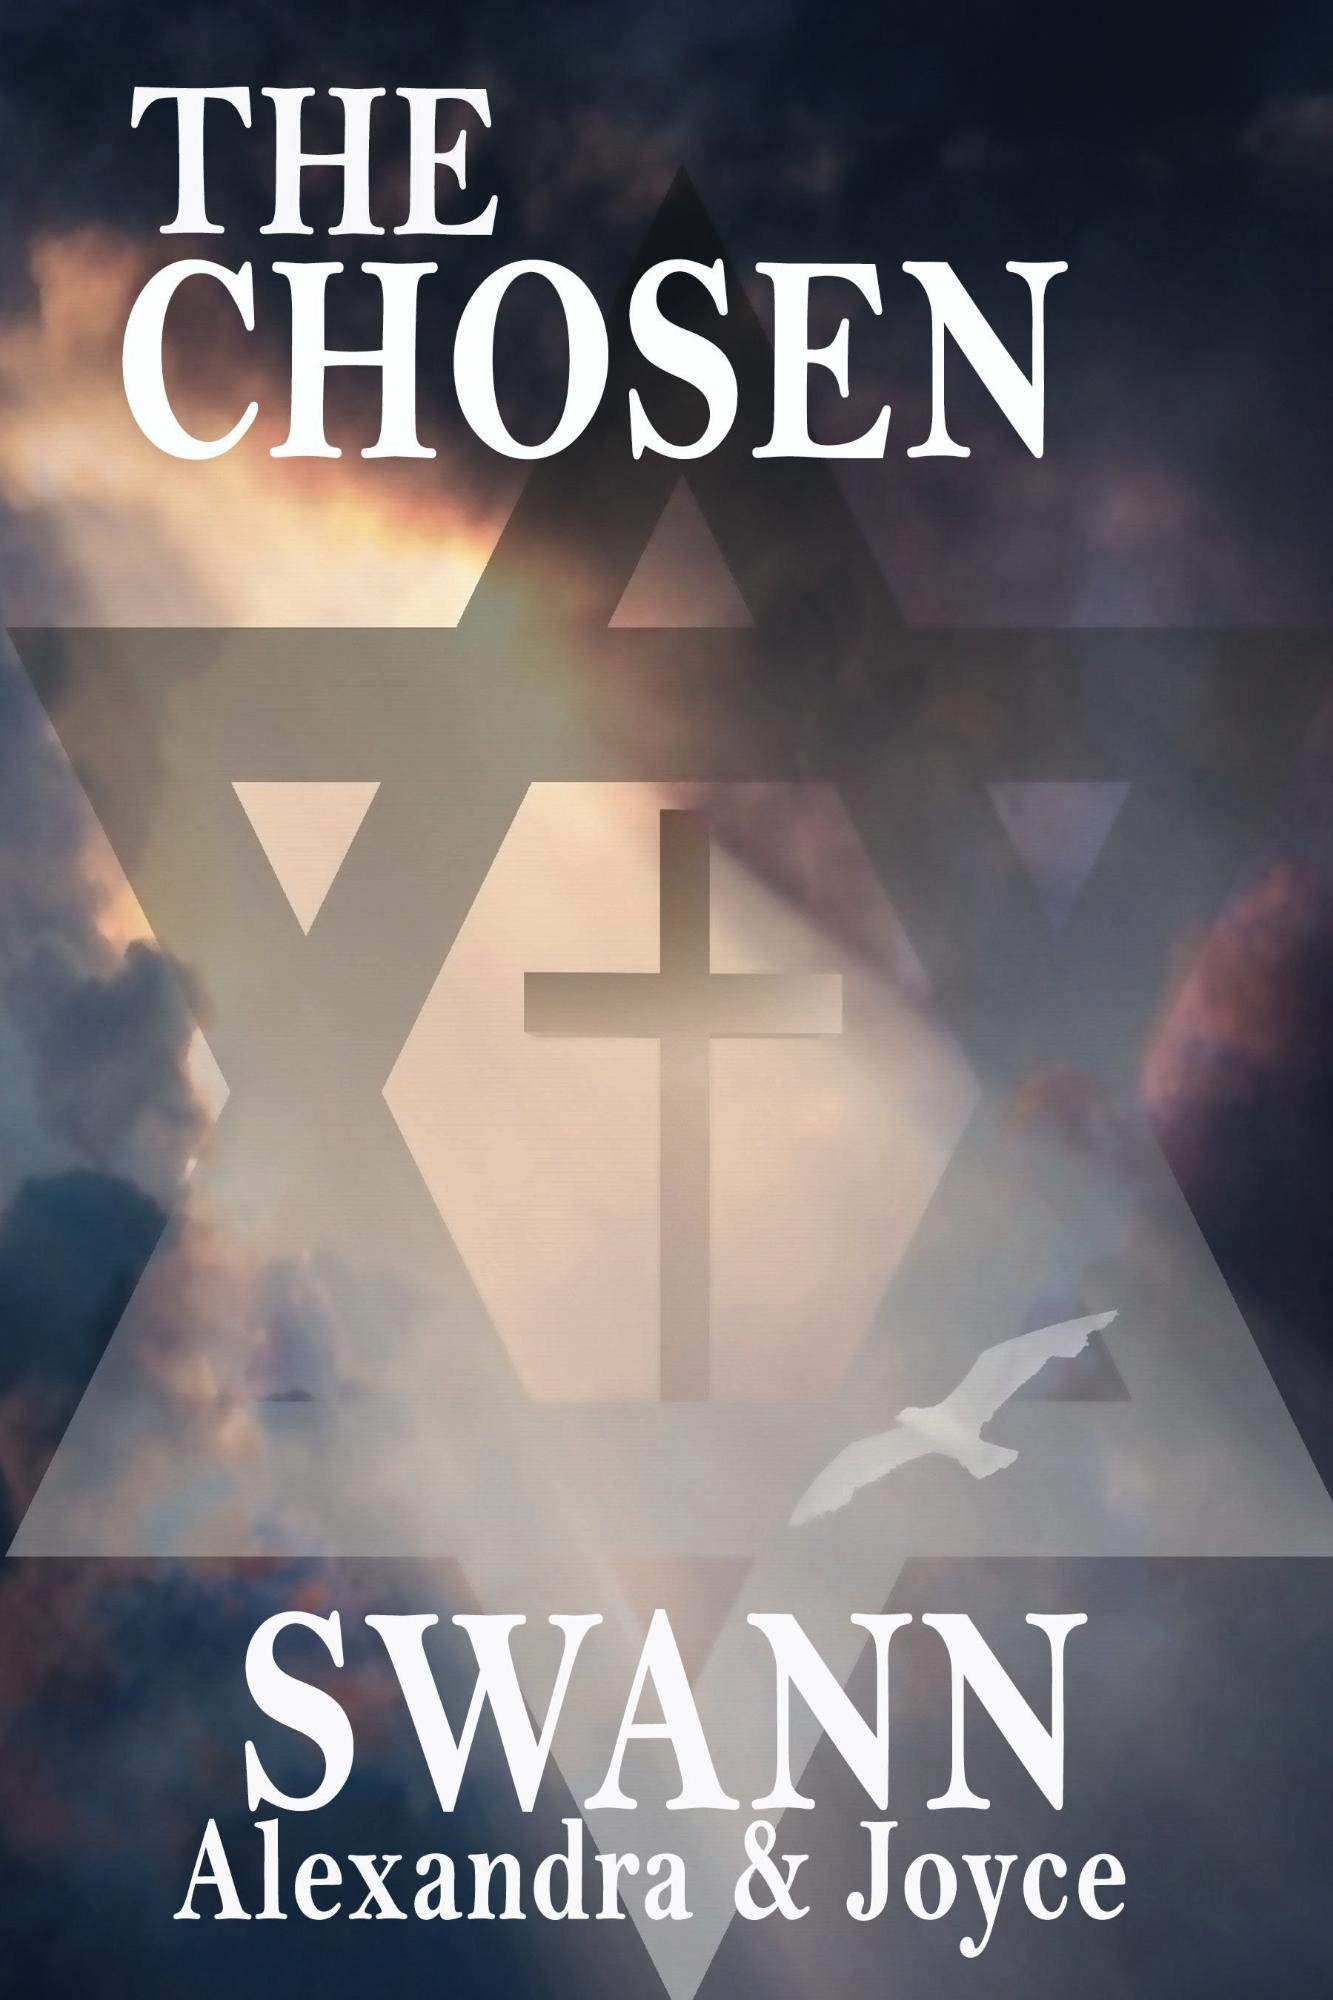 https://0201.nccdn.net/1_2/000/000/187/8e3/The_Chosen_Cover_for_Kindle-1333x2000.jpg